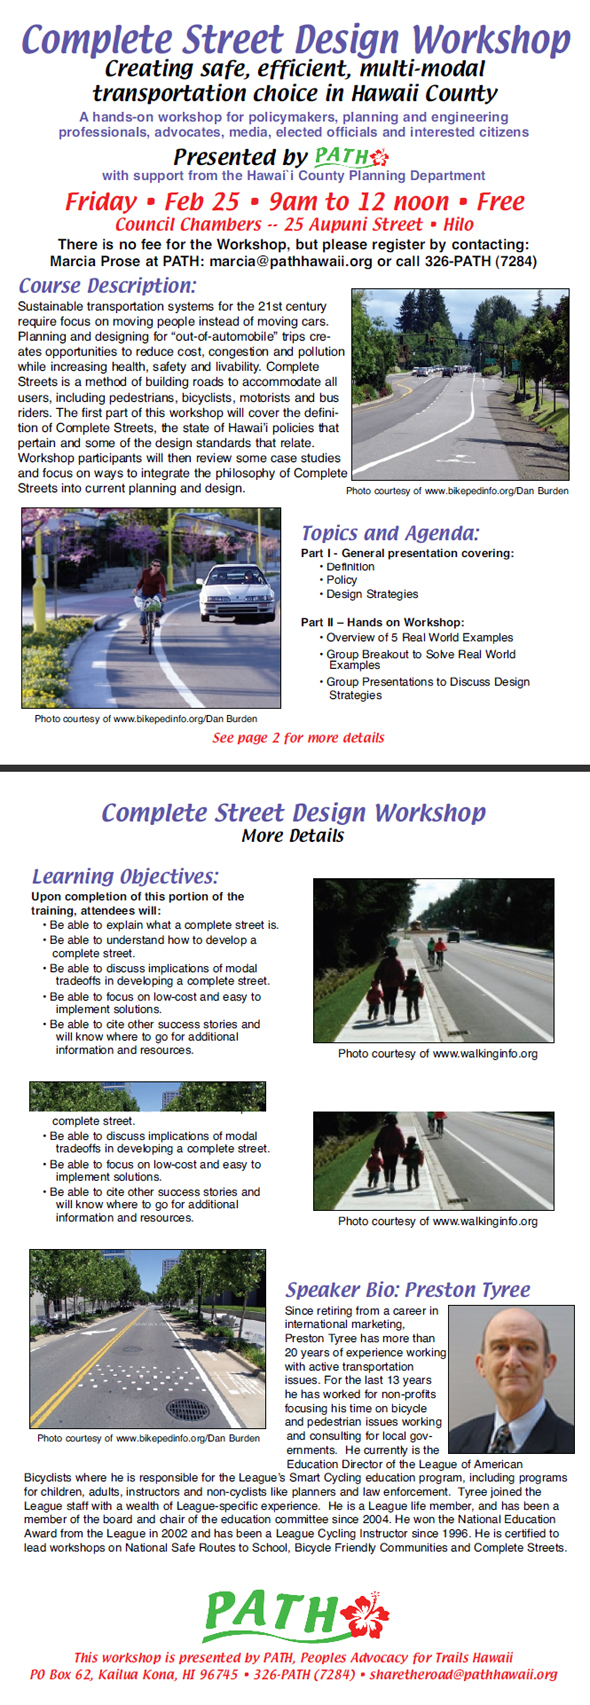 Complete Street Design Workshop in Hilo, Feb. 25